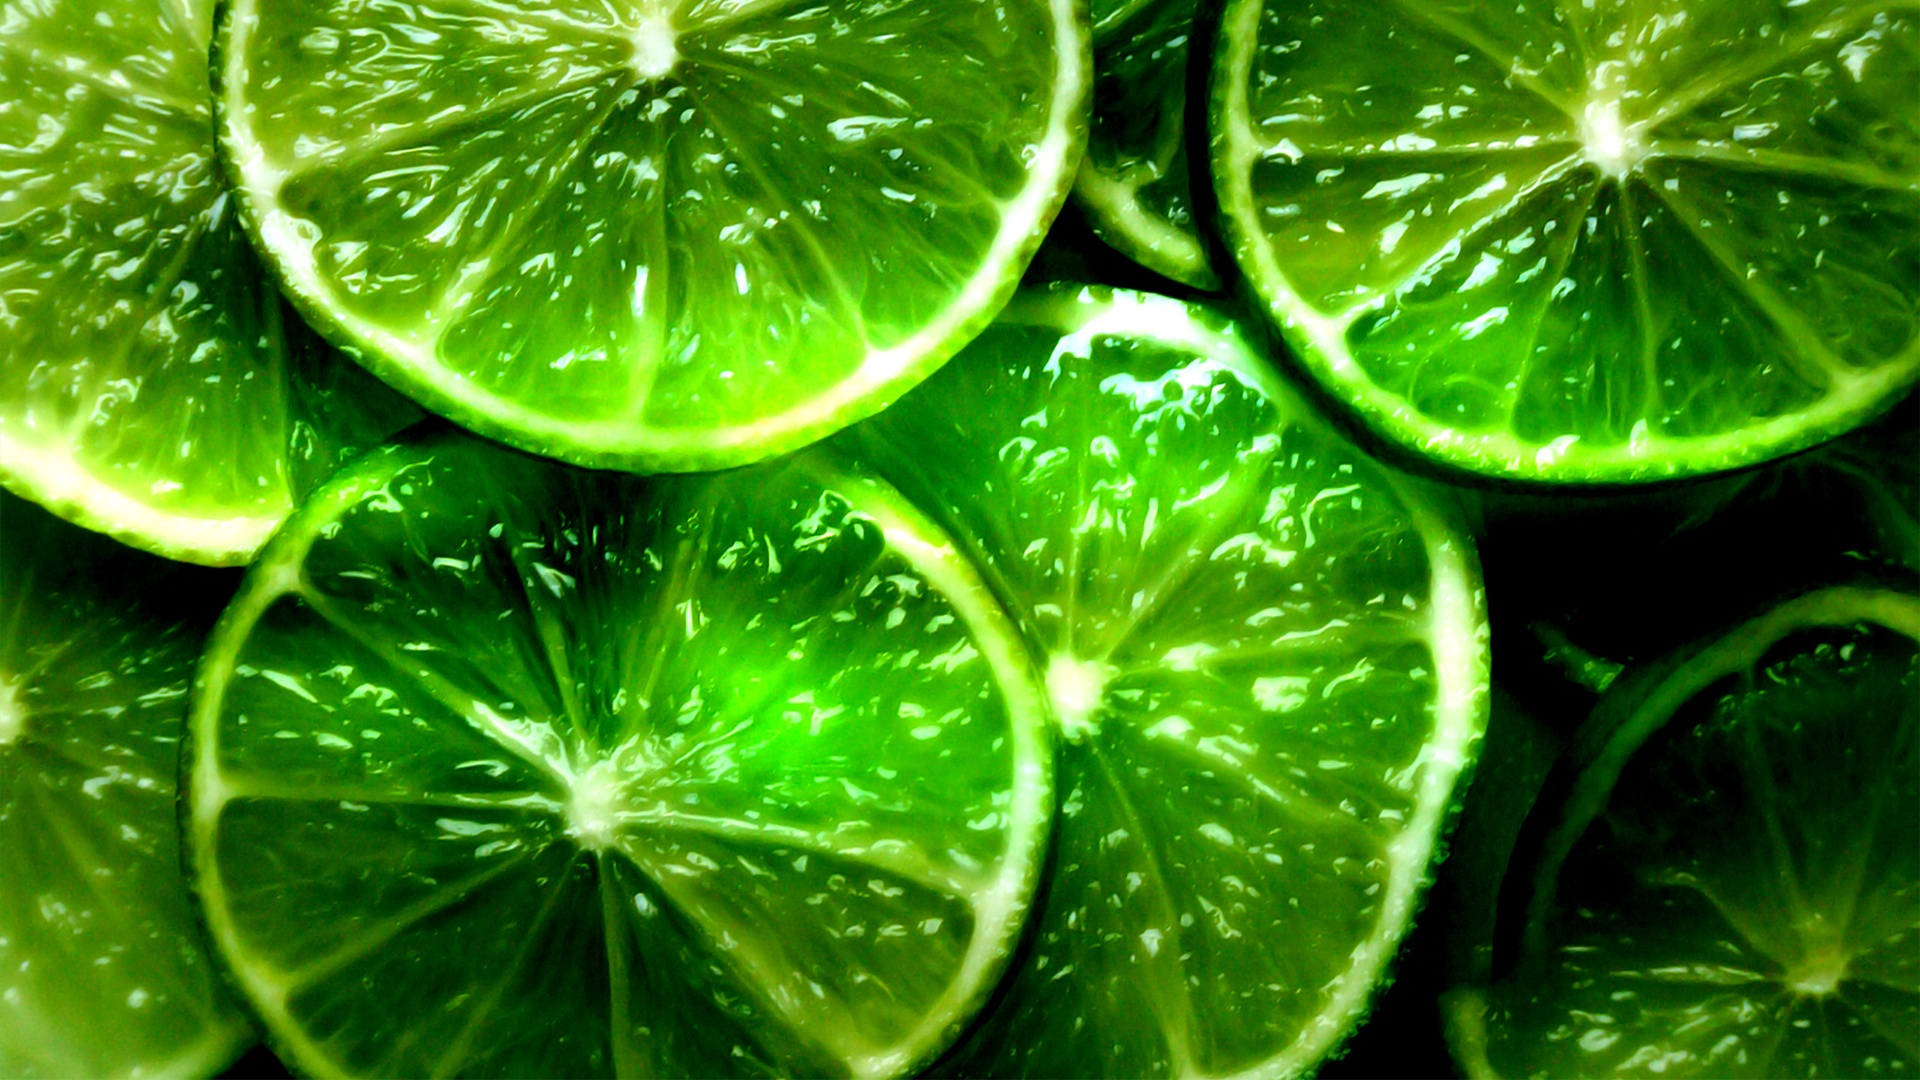 Http Hdwallsource Com Lime Green Wallpaper 21080 Html